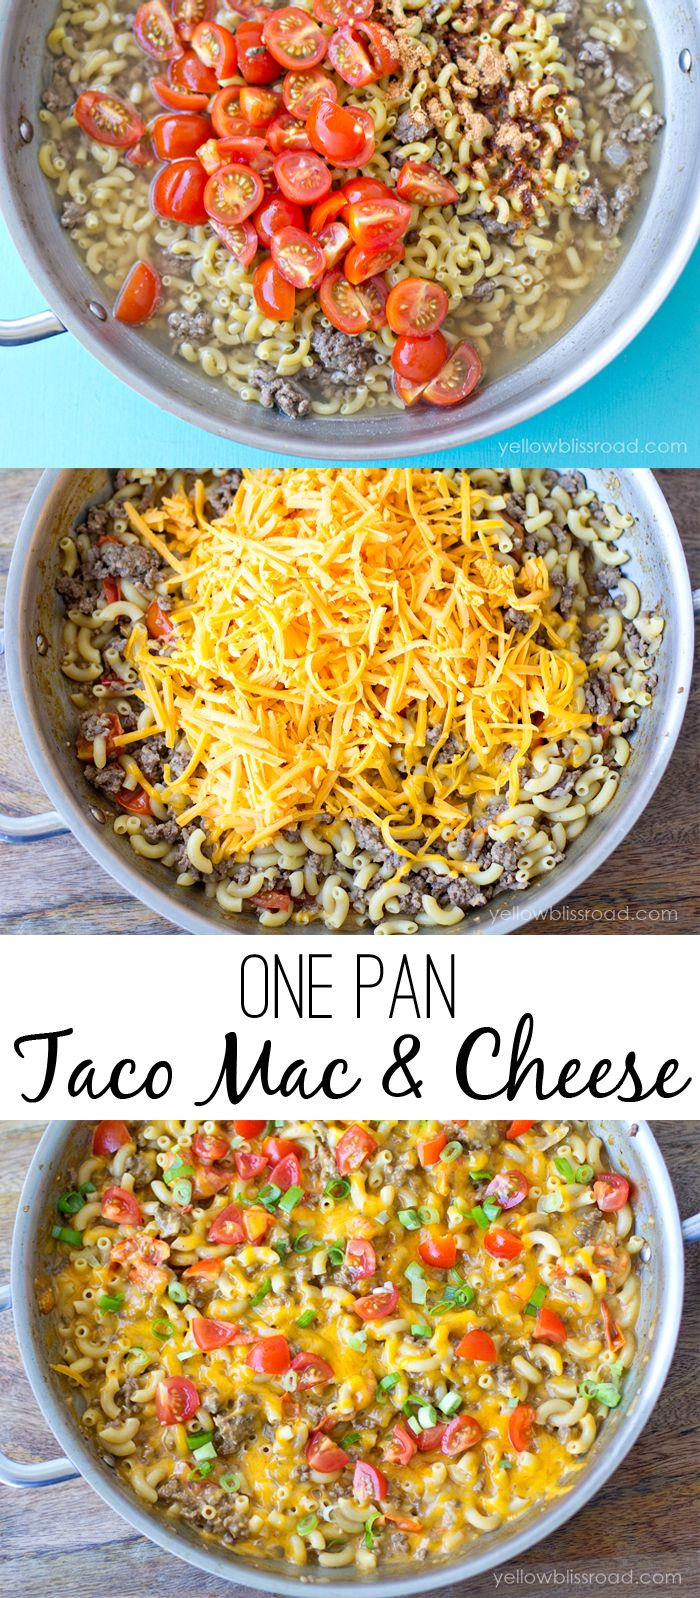 One Pan Taco Macaroni and Cheese. I used rotisserie chicken instead of beef. Excellent. This recipe makes a ton....I need to cut it in half next time.